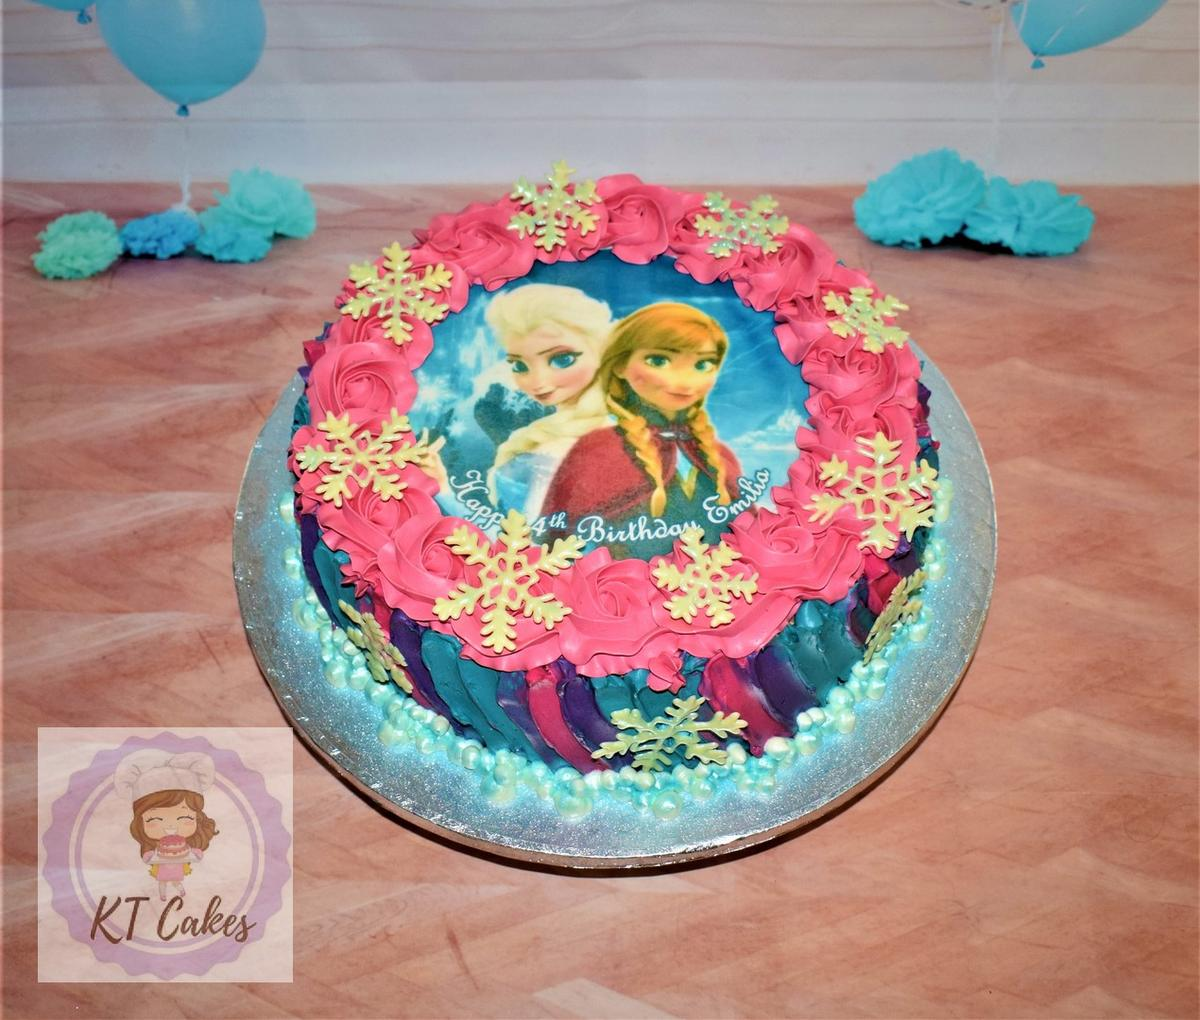 Miraculous Kids Birthday Cake In Bh15 Poole For 30 00 For Sale Shpock Personalised Birthday Cards Beptaeletsinfo